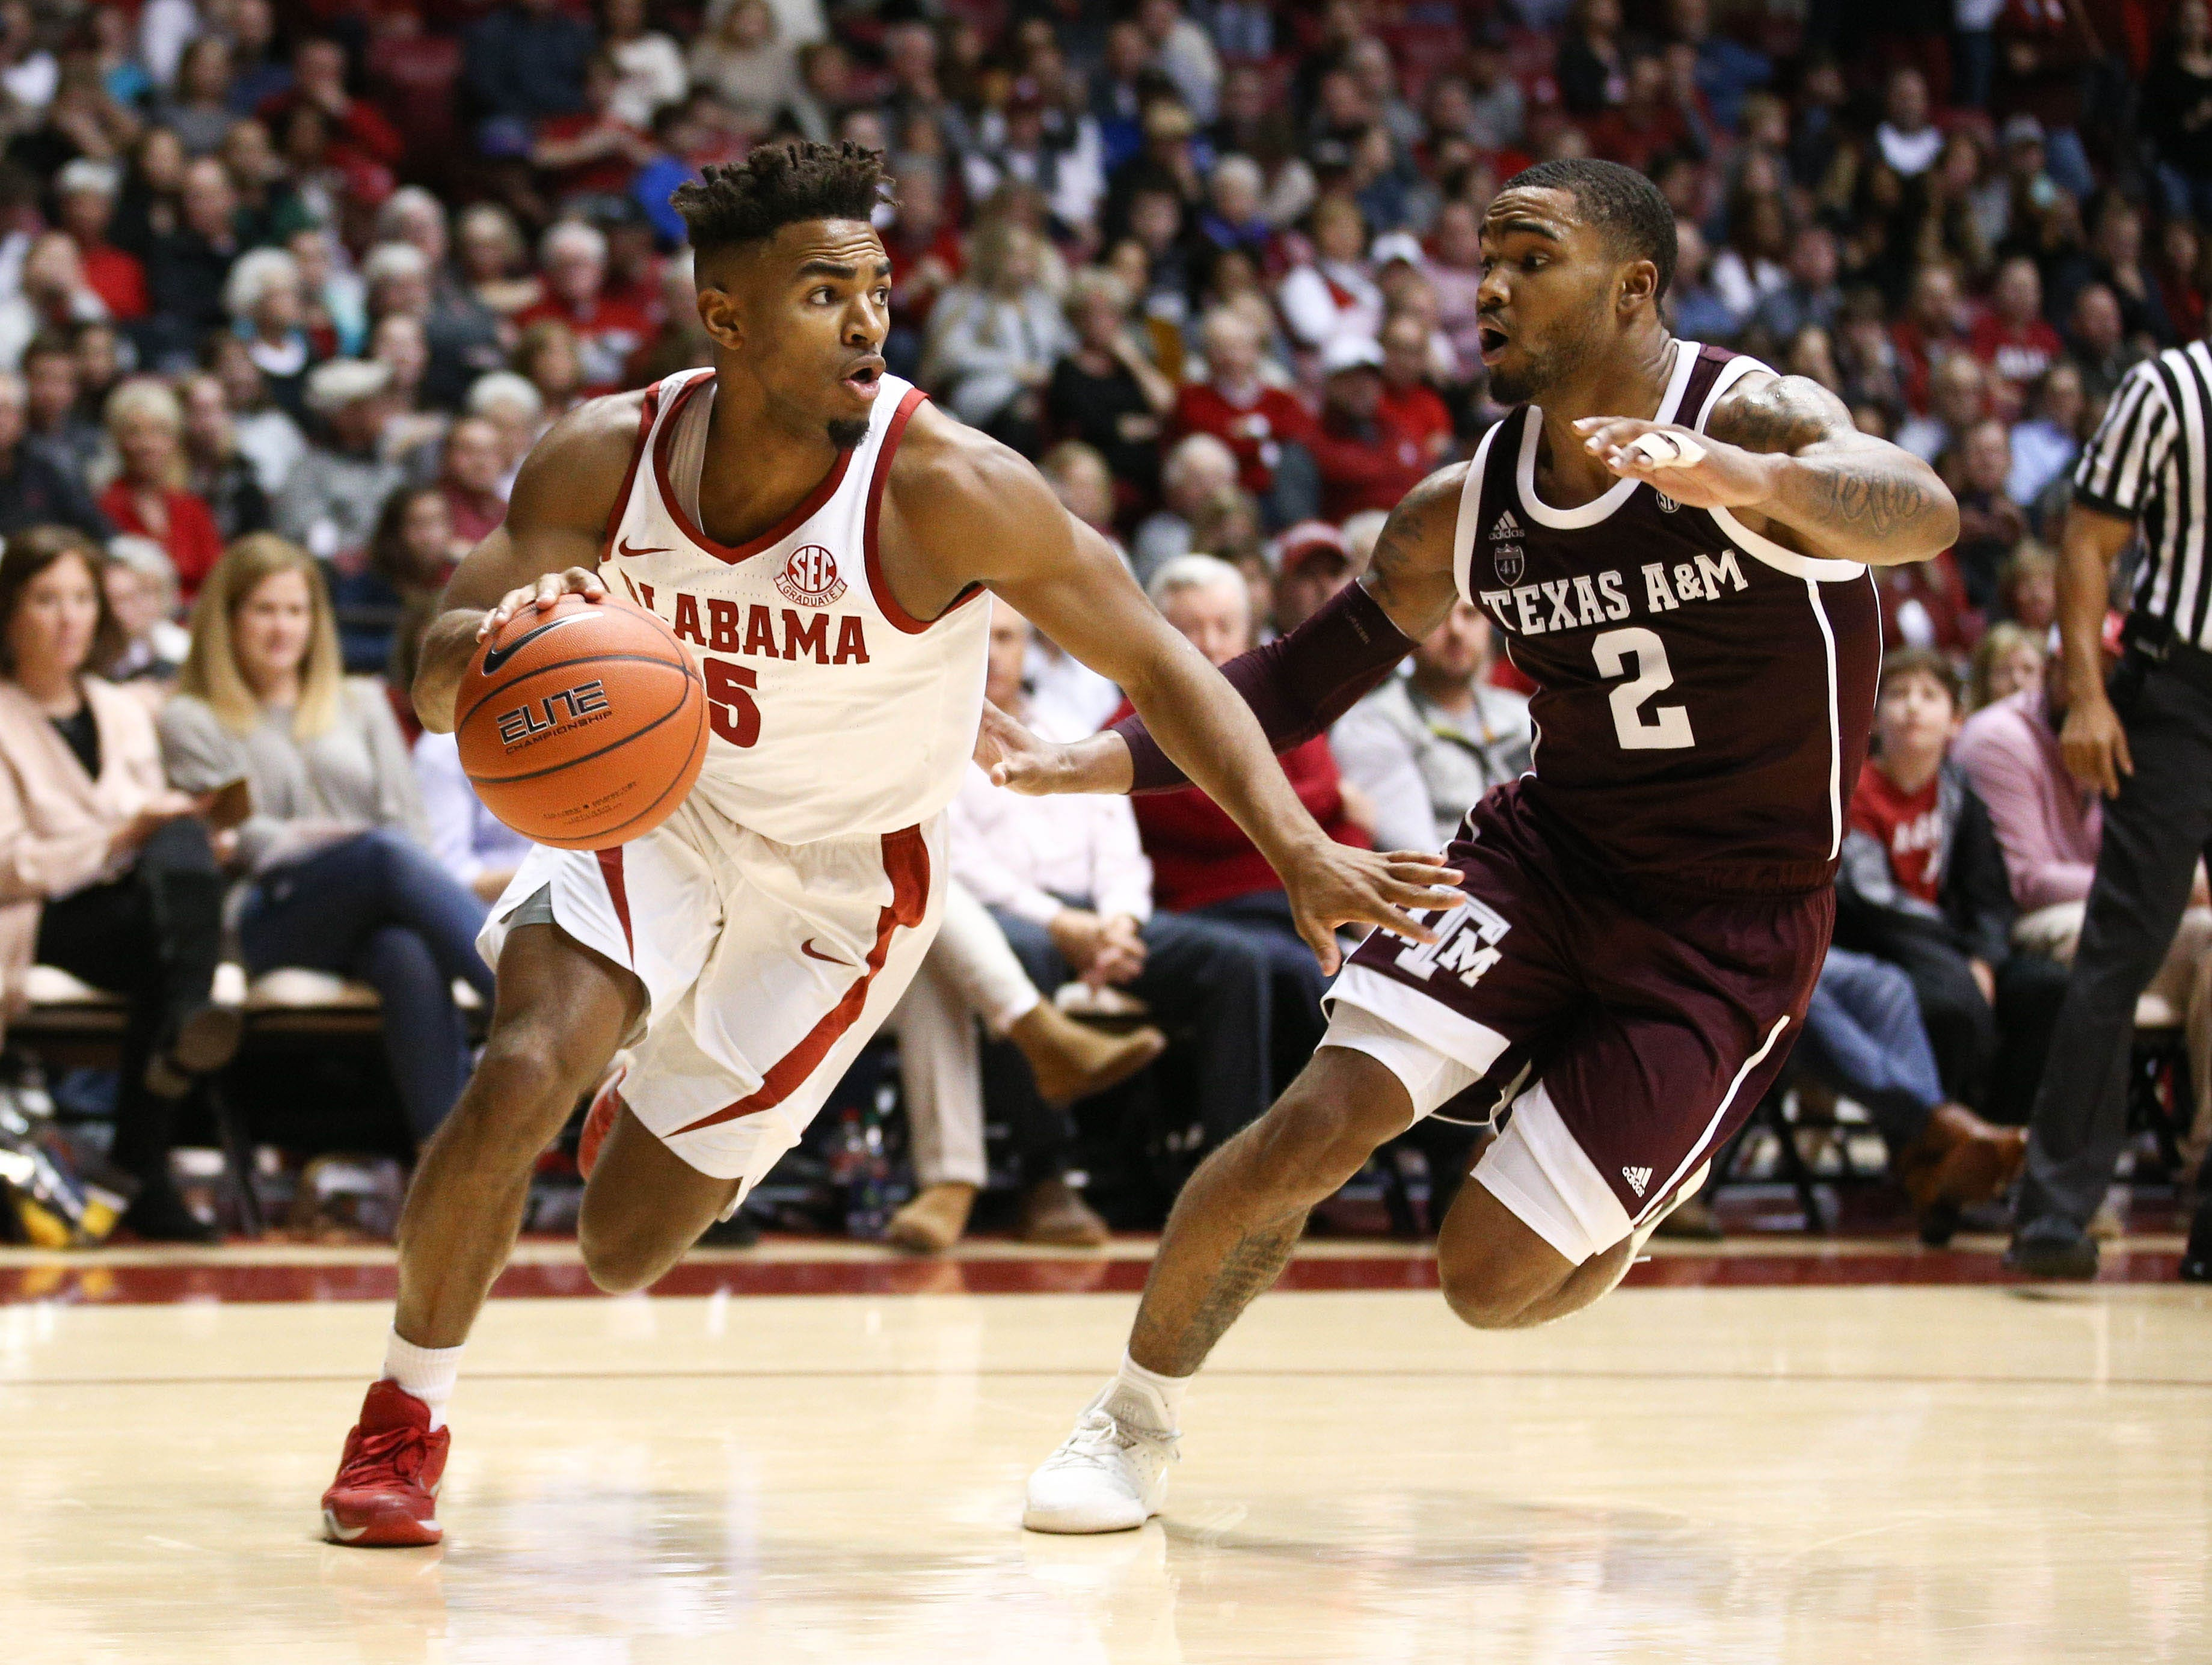 Jan 12, 2019; Tuscaloosa, AL, USA; Alabama Crimson Tide guard Avery Johnson Jr. (5) controls the ball as Texas A&M Aggies guard TJ Starks (2) defends during the second half at Coleman Coliseum. Mandatory Credit: Marvin Gentry-USA TODAY Sports